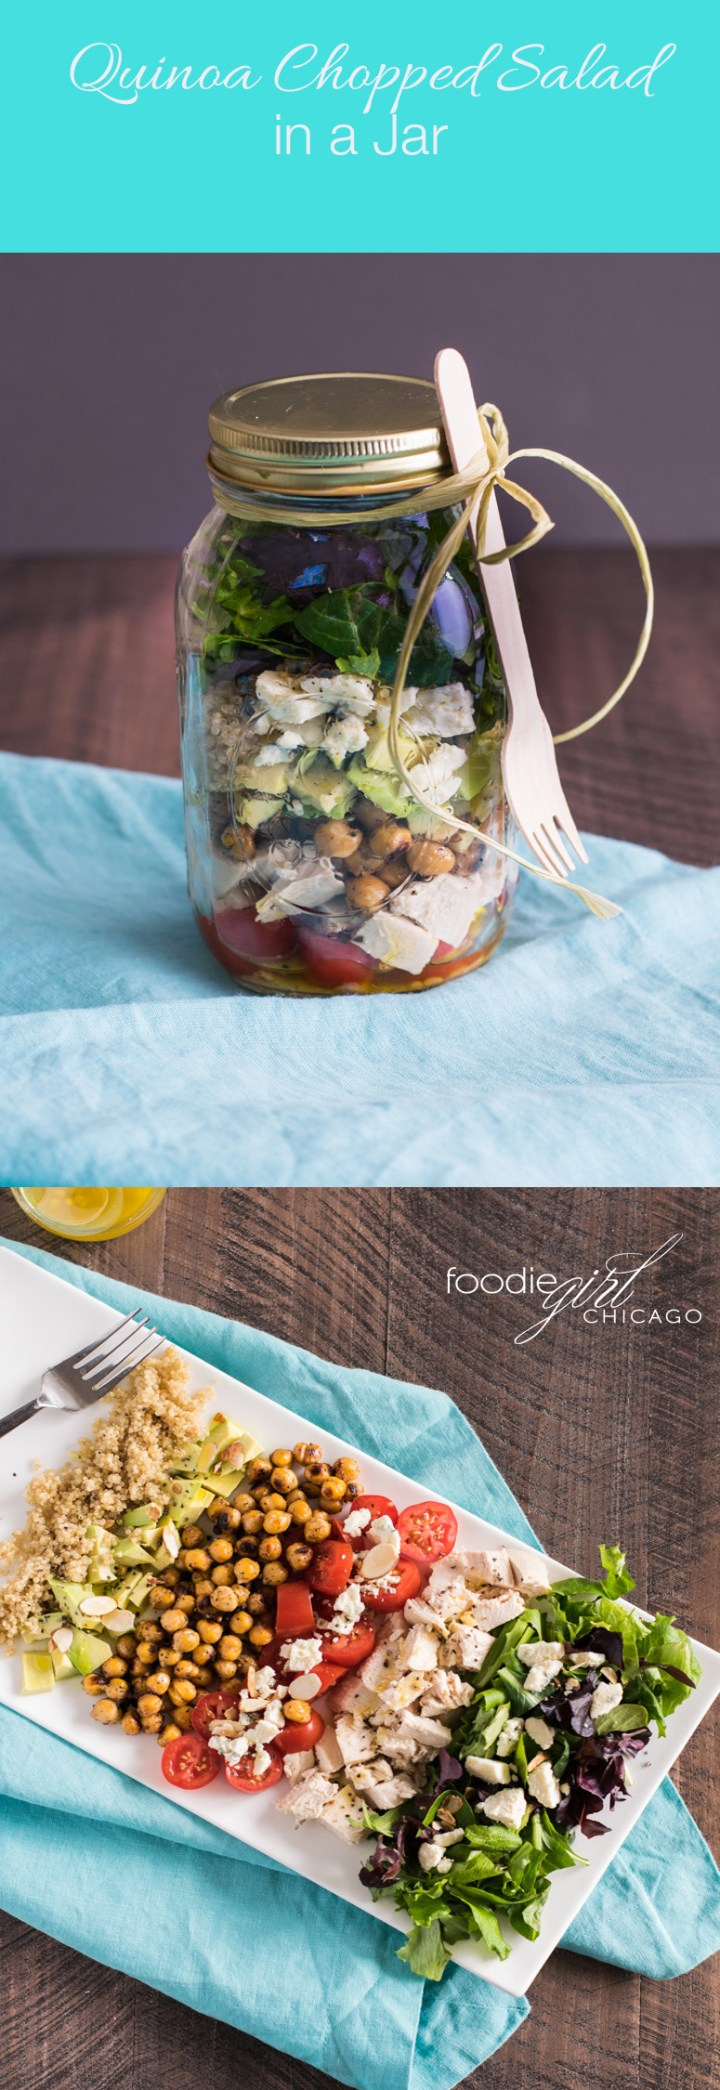 This amazing Quinoa Chopped Salad is loaded with flavor from the crispy herbed chickpeas, crunchy pancetta and my favorite champagne vinaigrette.  It's packed in a jar for an easy weekday lunch at work!